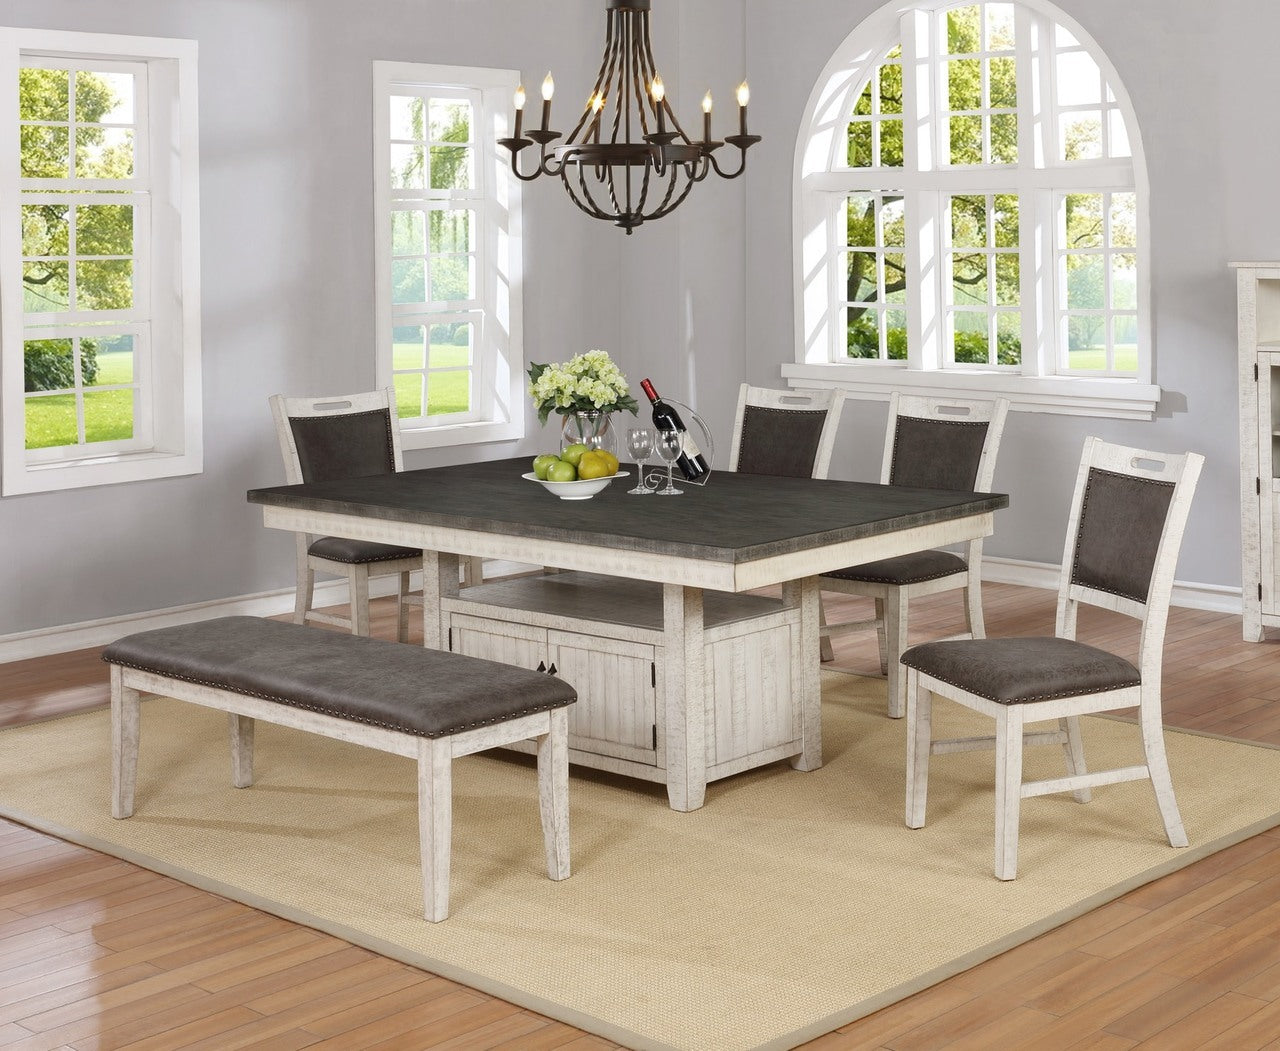 Rubbed White and Gray Dining Set